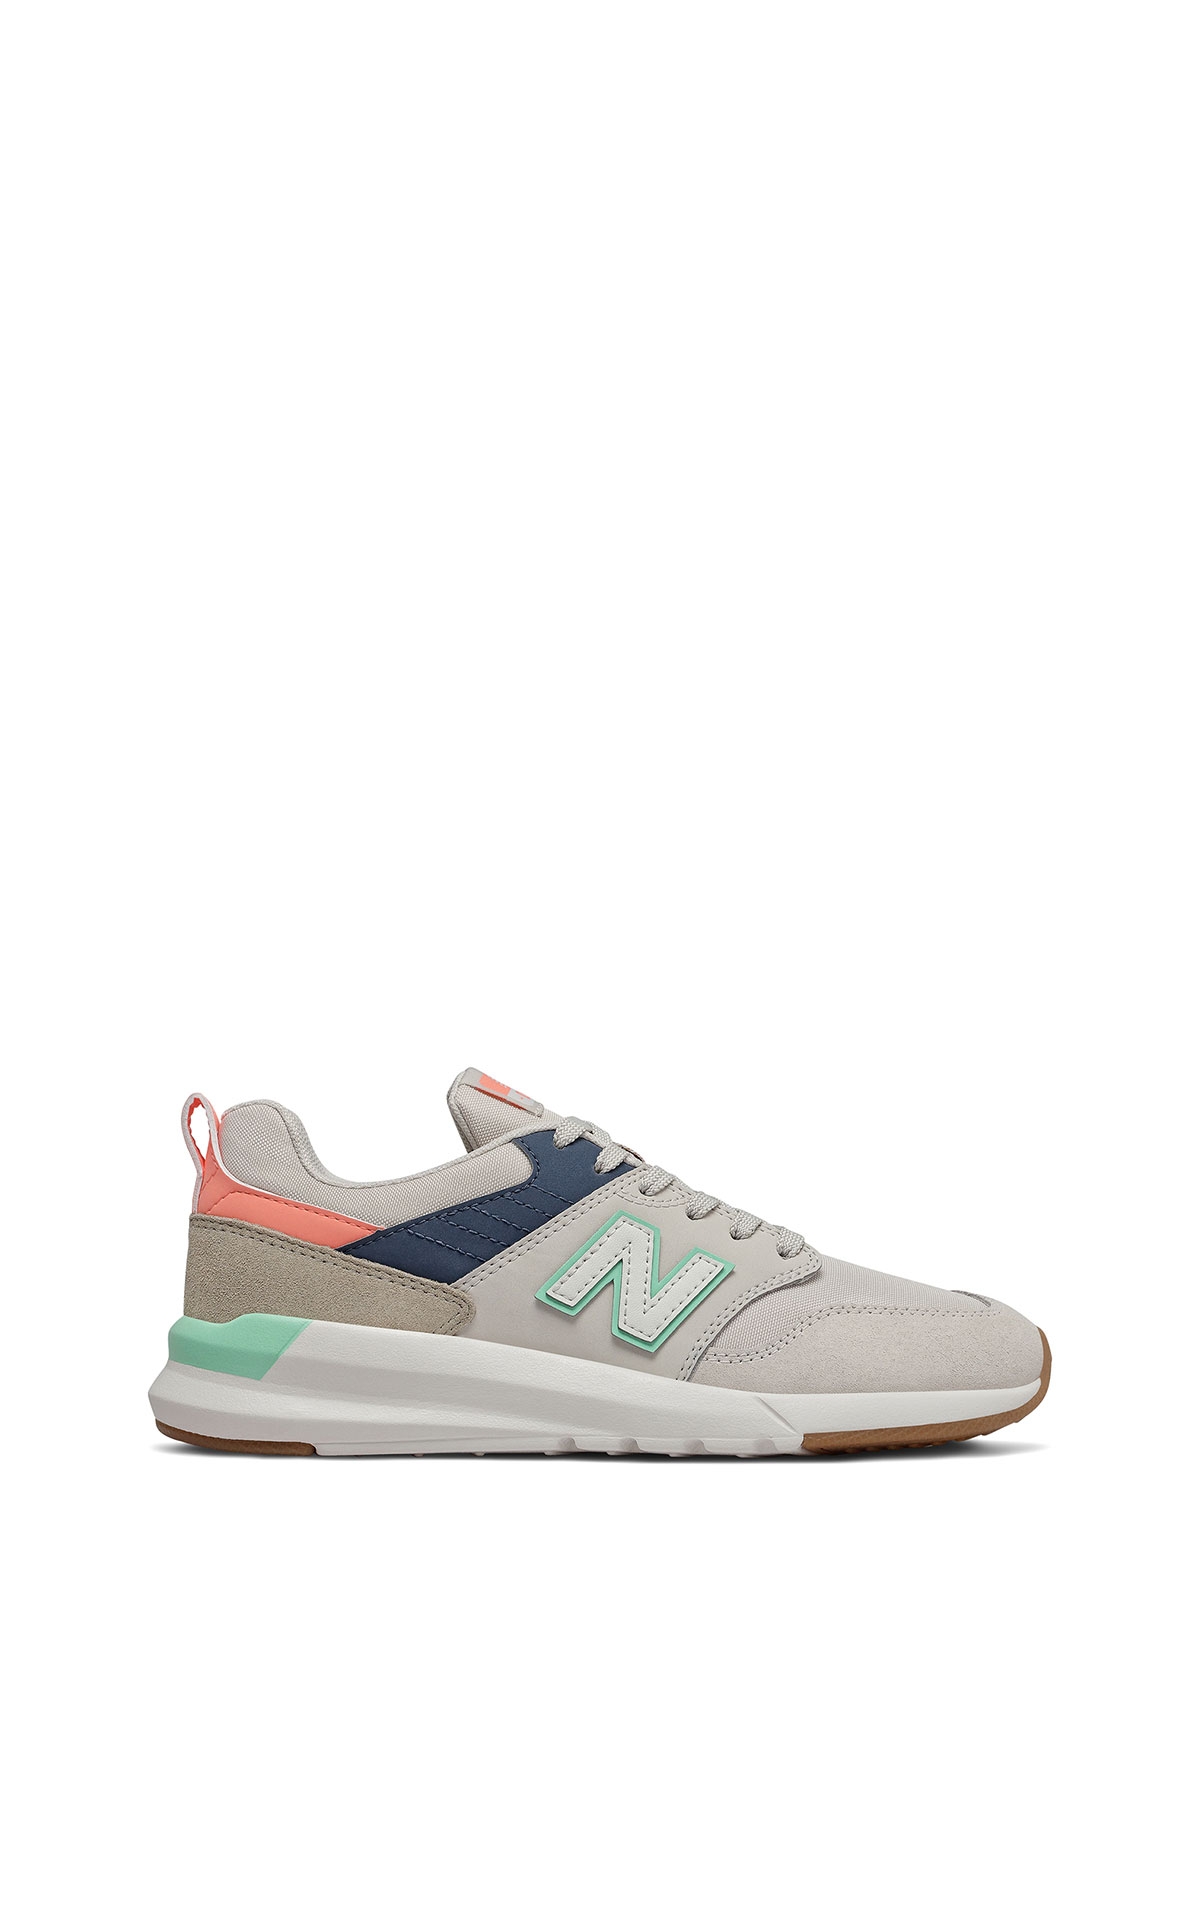 New Balance 009 from Bicester Village